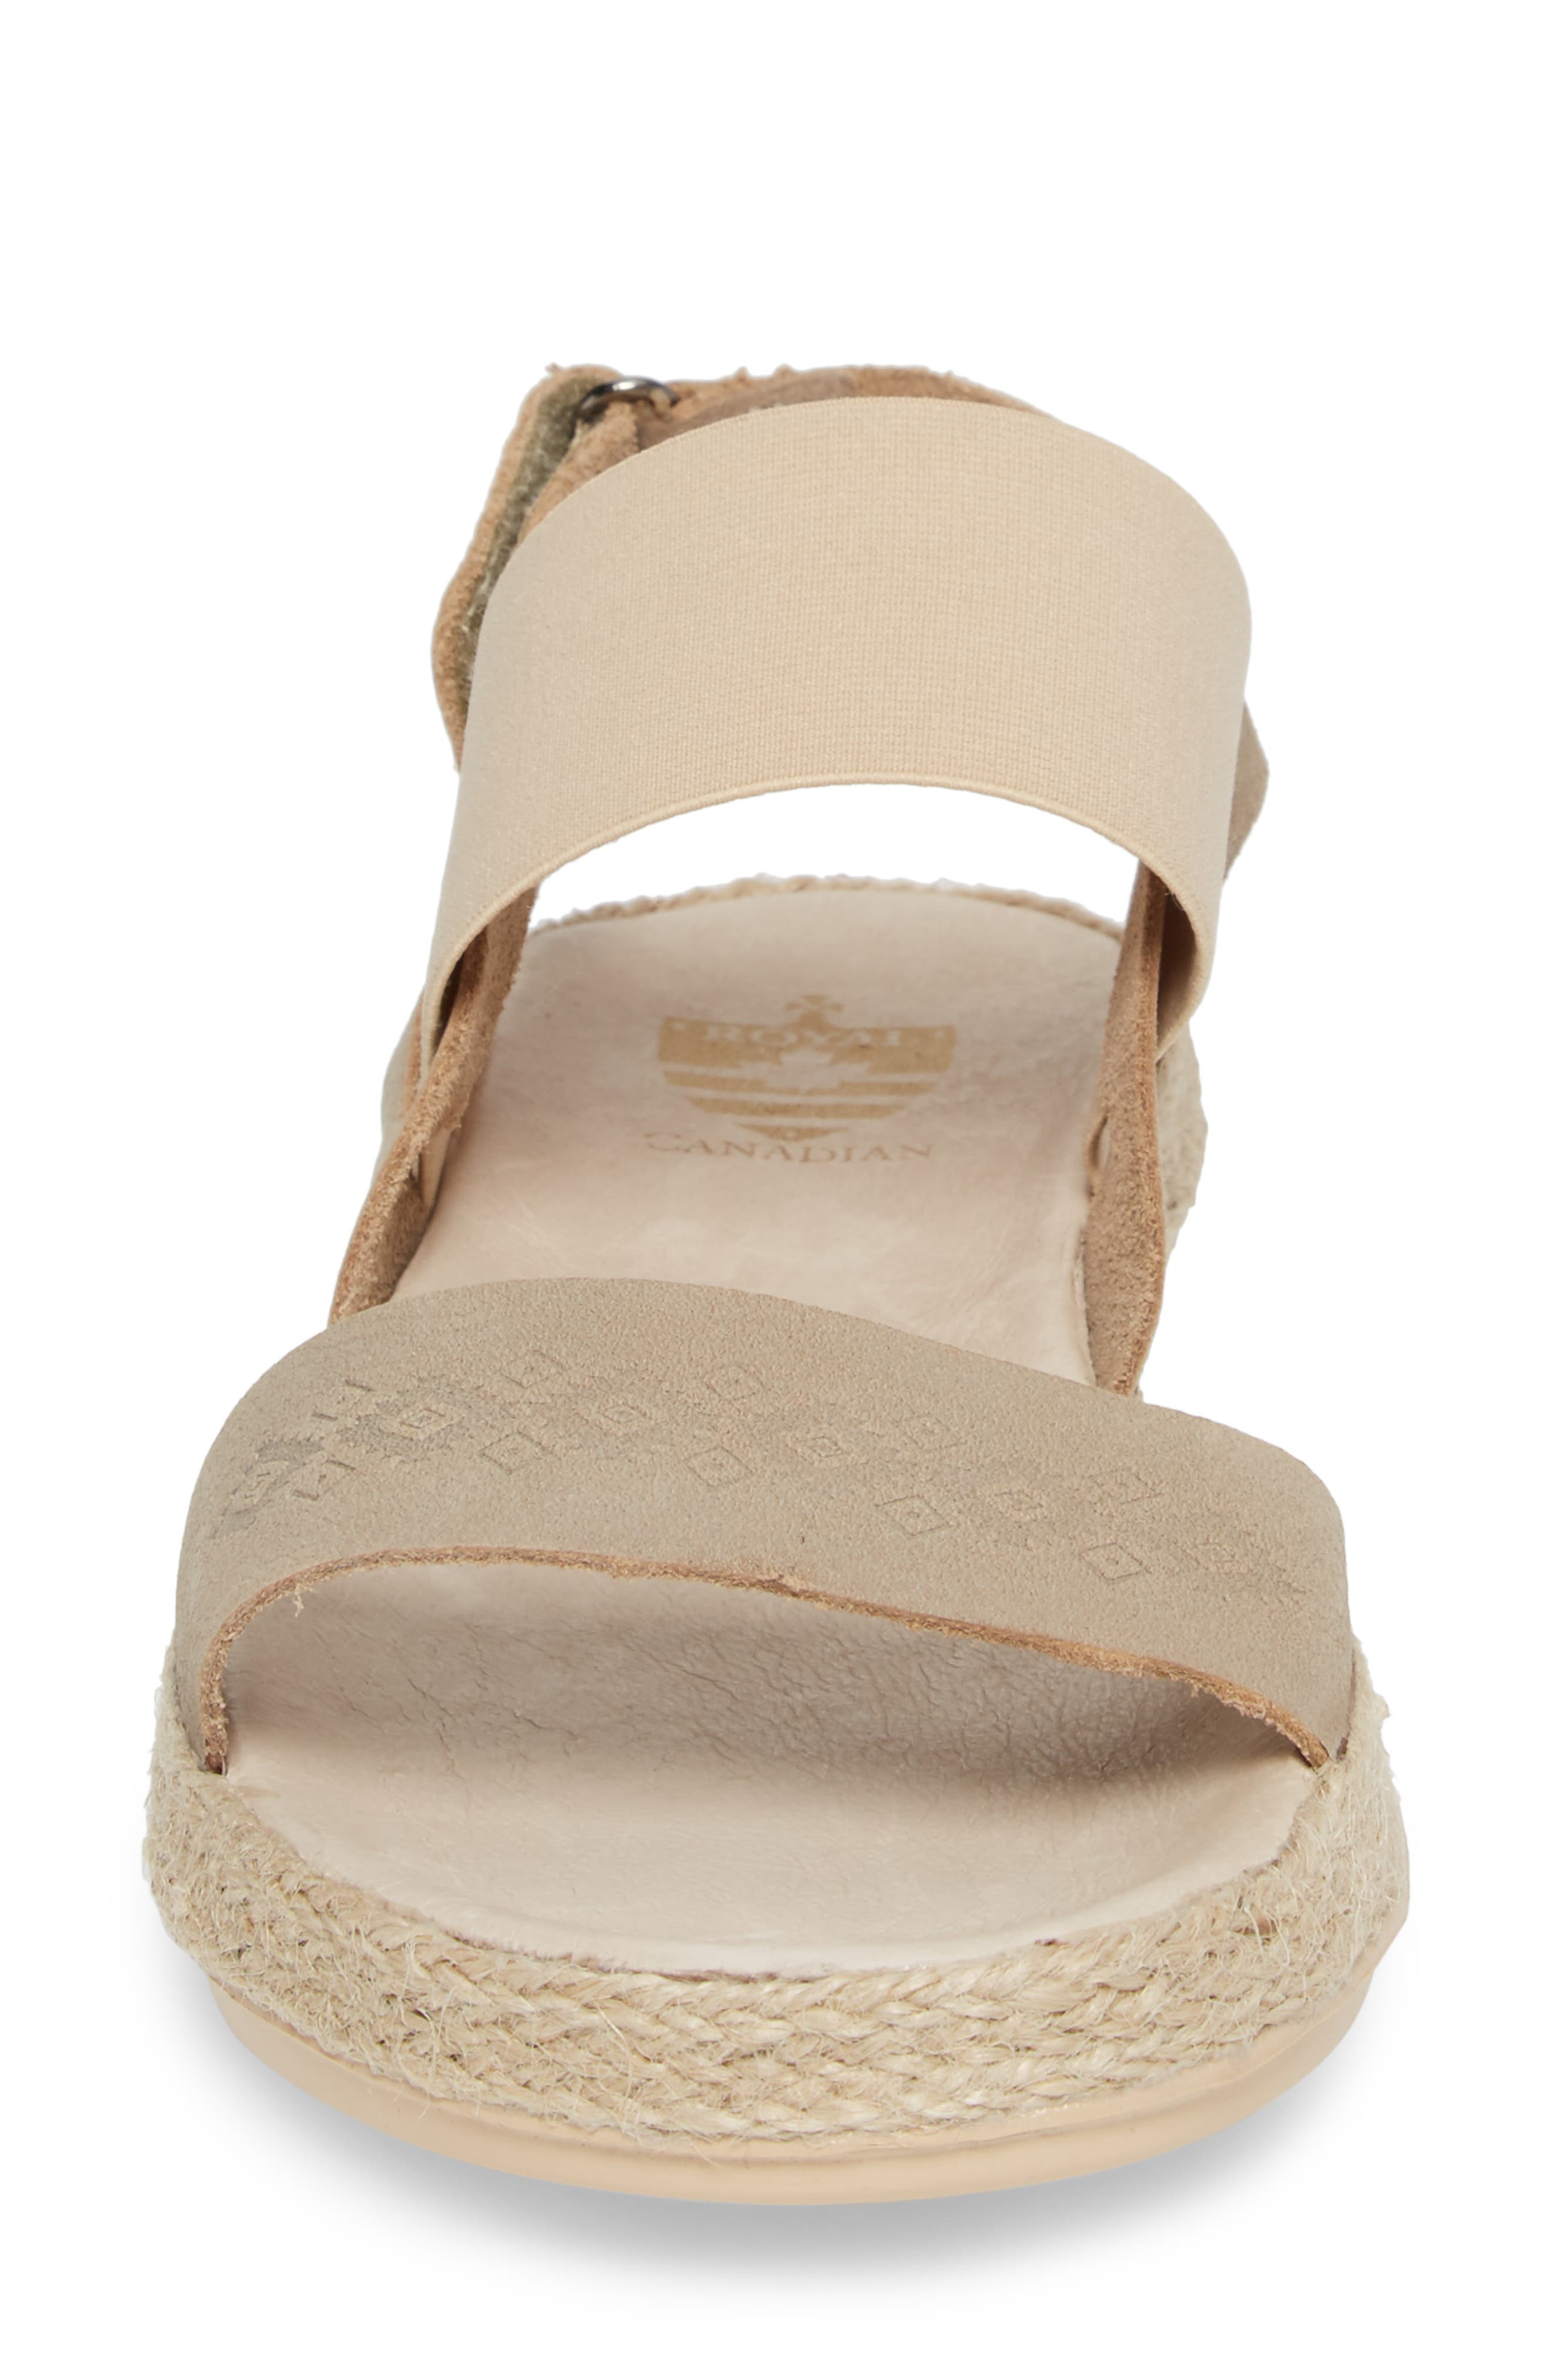 Tobermory Sandal,                             Alternate thumbnail 4, color,                             TAUPE LEATHER